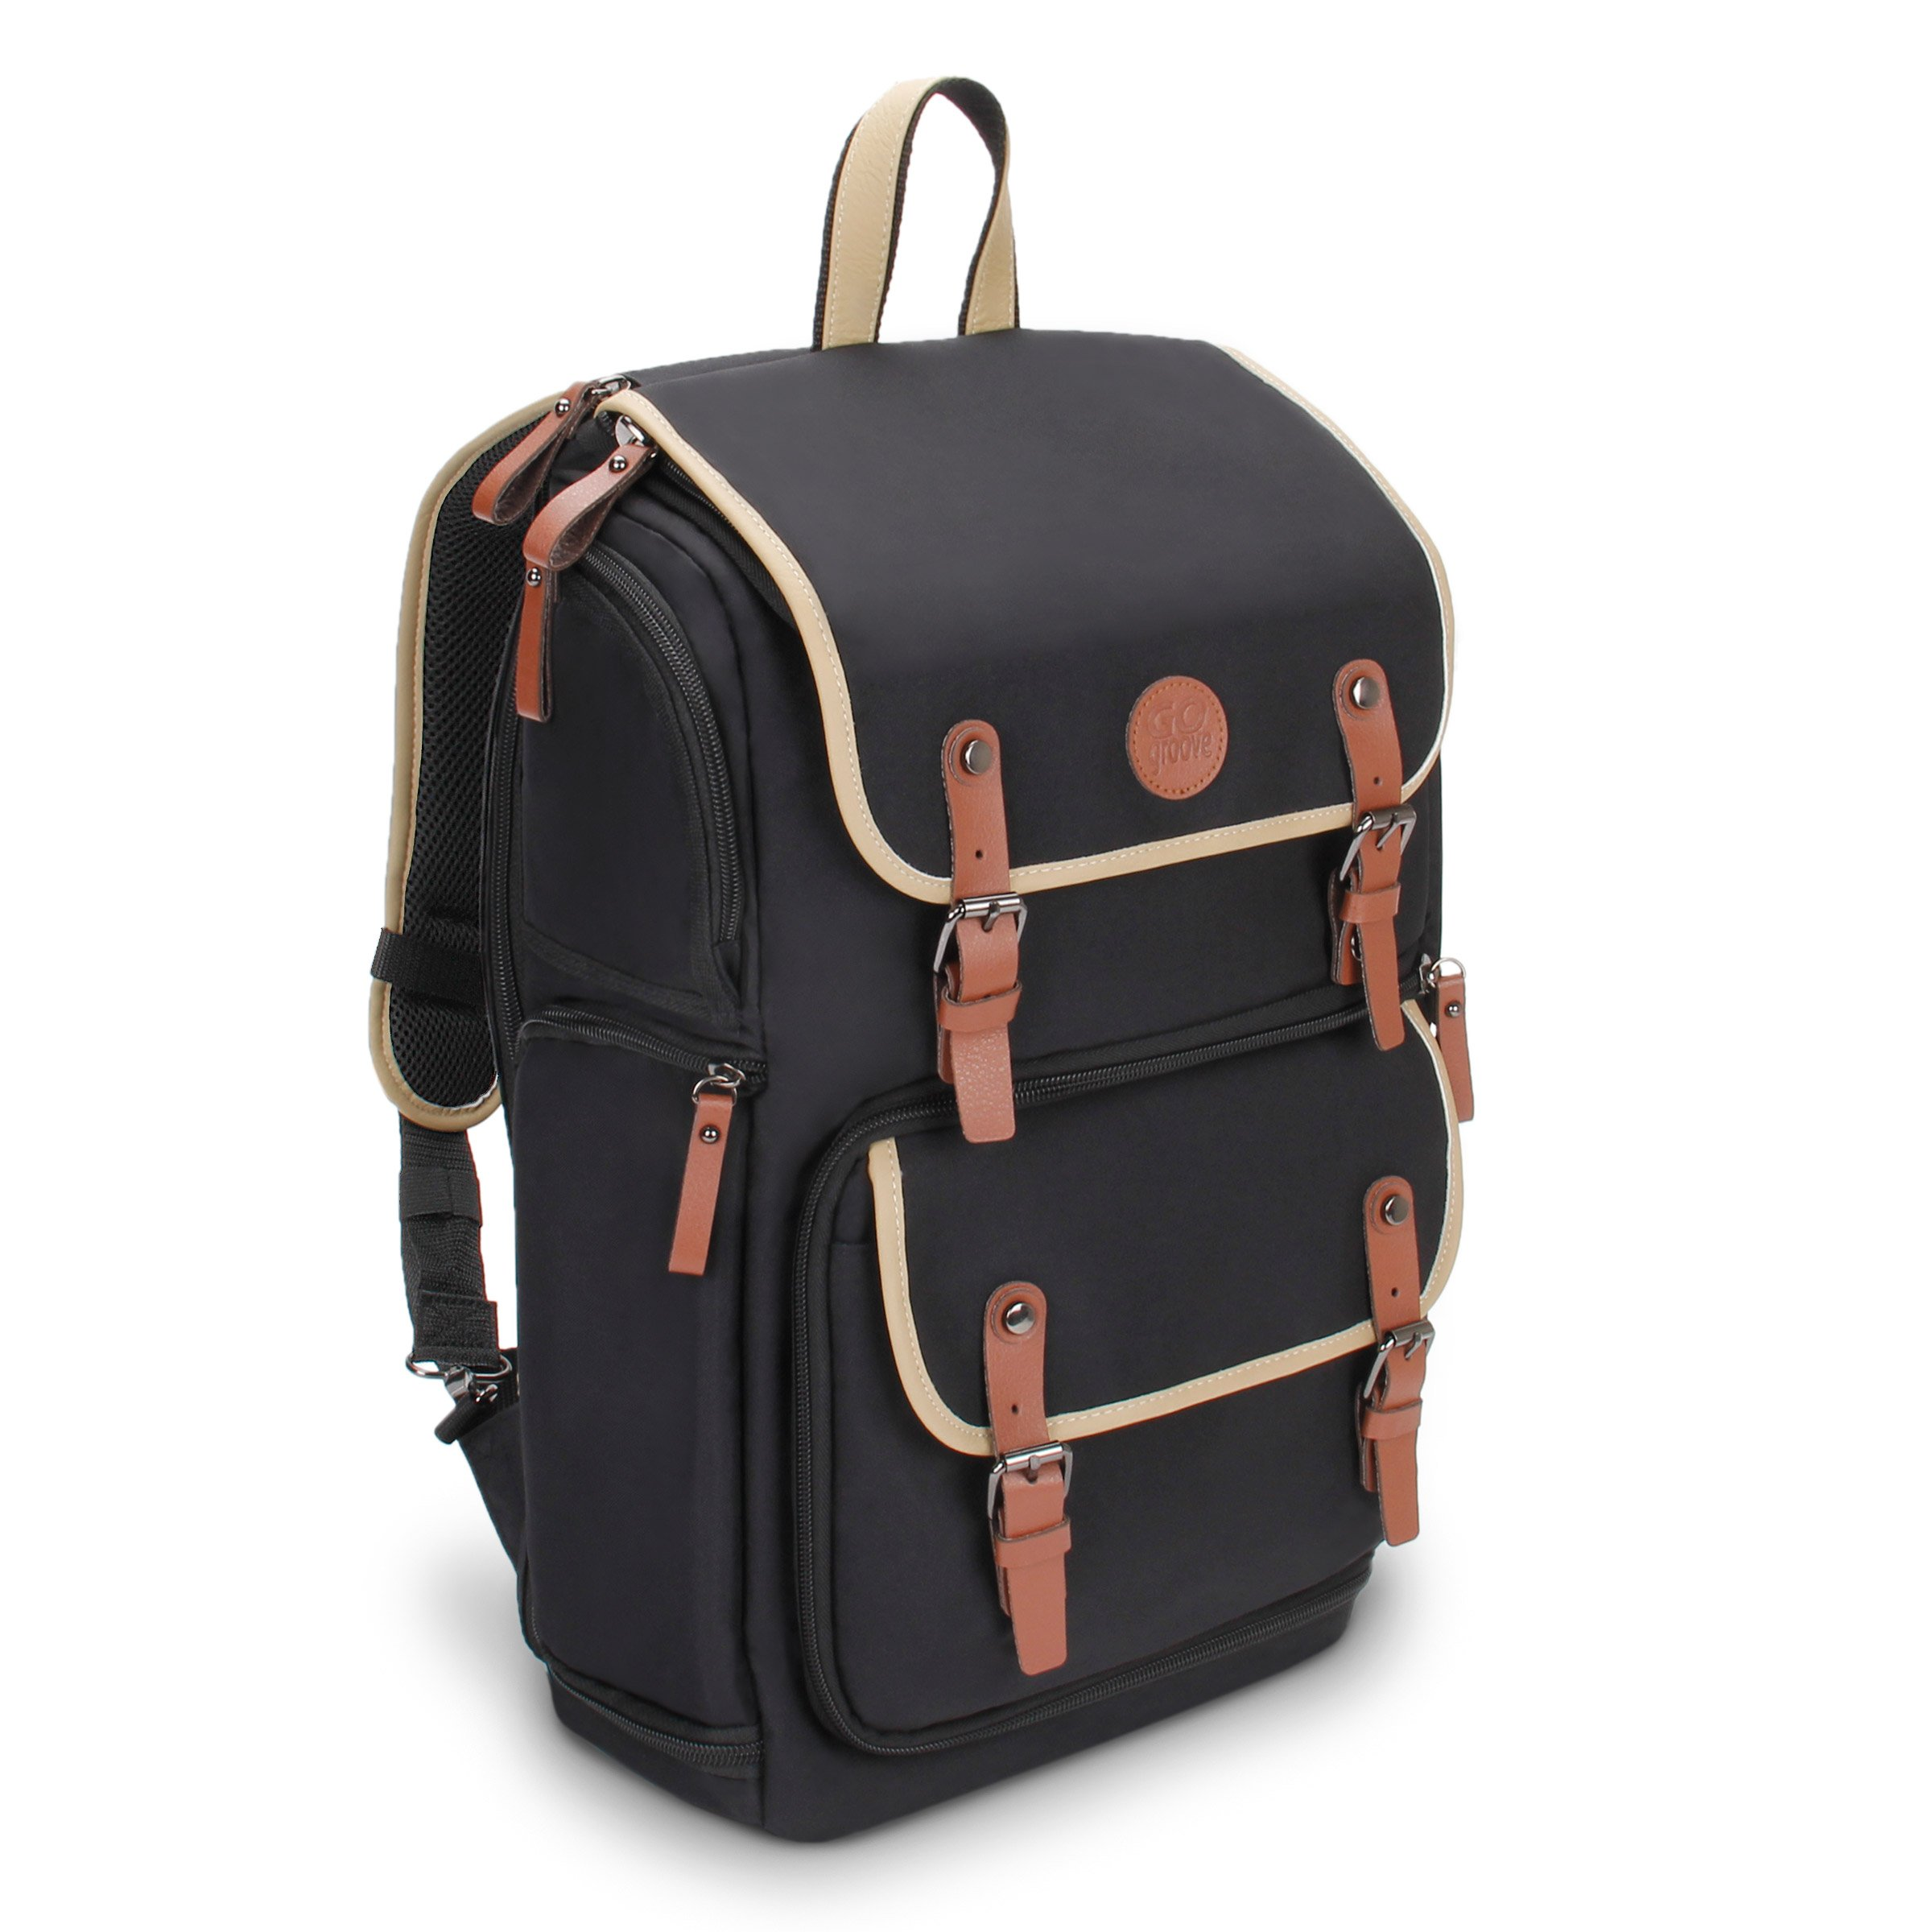 GOgroove Full-Size DSLR Photography Backpack Case (Black) for Camera and Laptop with 15.6 inch Laptop Space, Accessory Storage, Tripod Holder, Long-Lasting Durability and Weatherproof Rain Cover